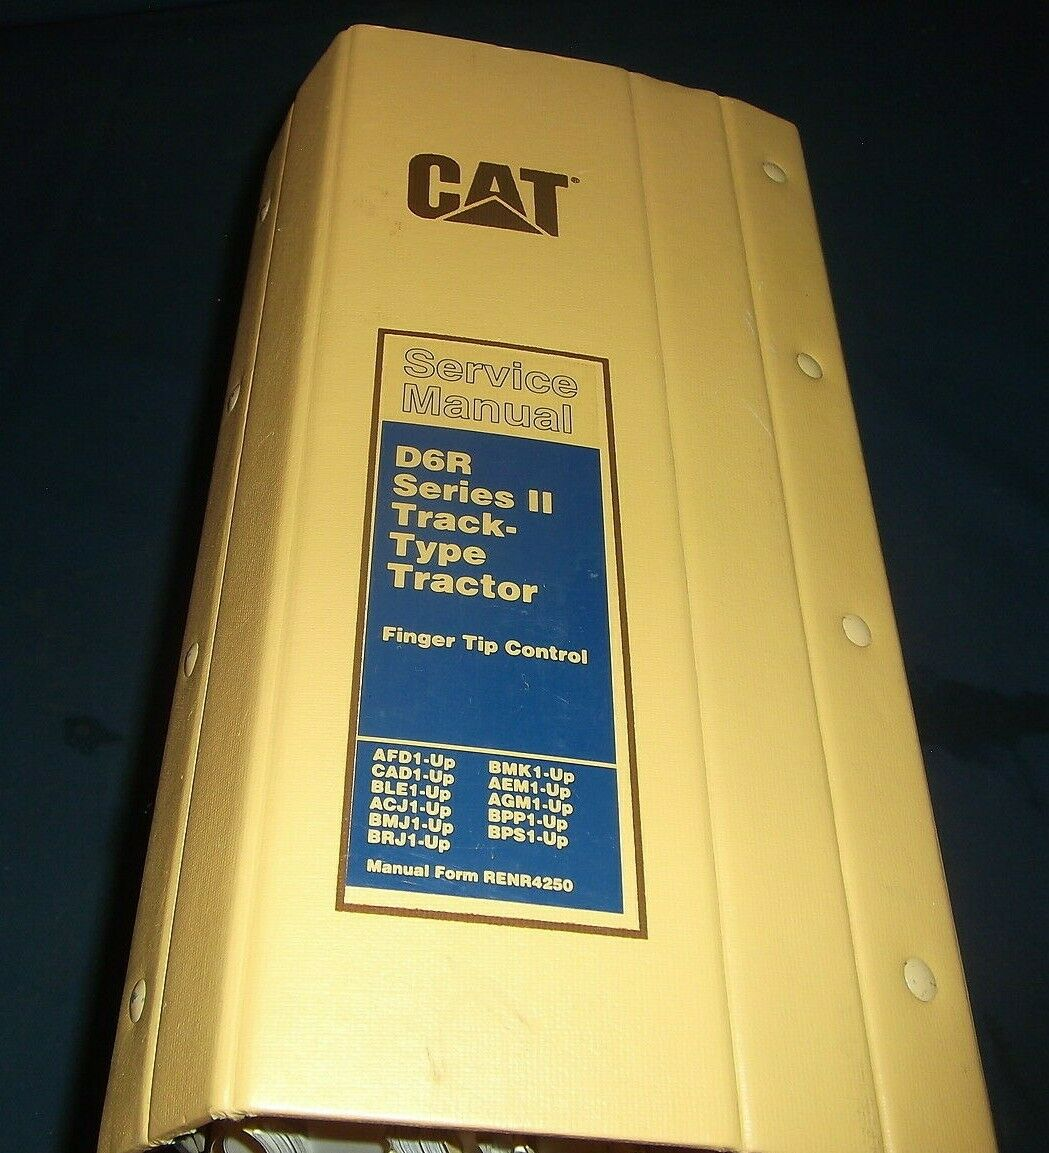 Cat Caterpillar D6R Series Ii Tractor Dozer Service Shop Repair Book Manual  1 of 11Only 1 available Cat Caterpillar D6R Series ...